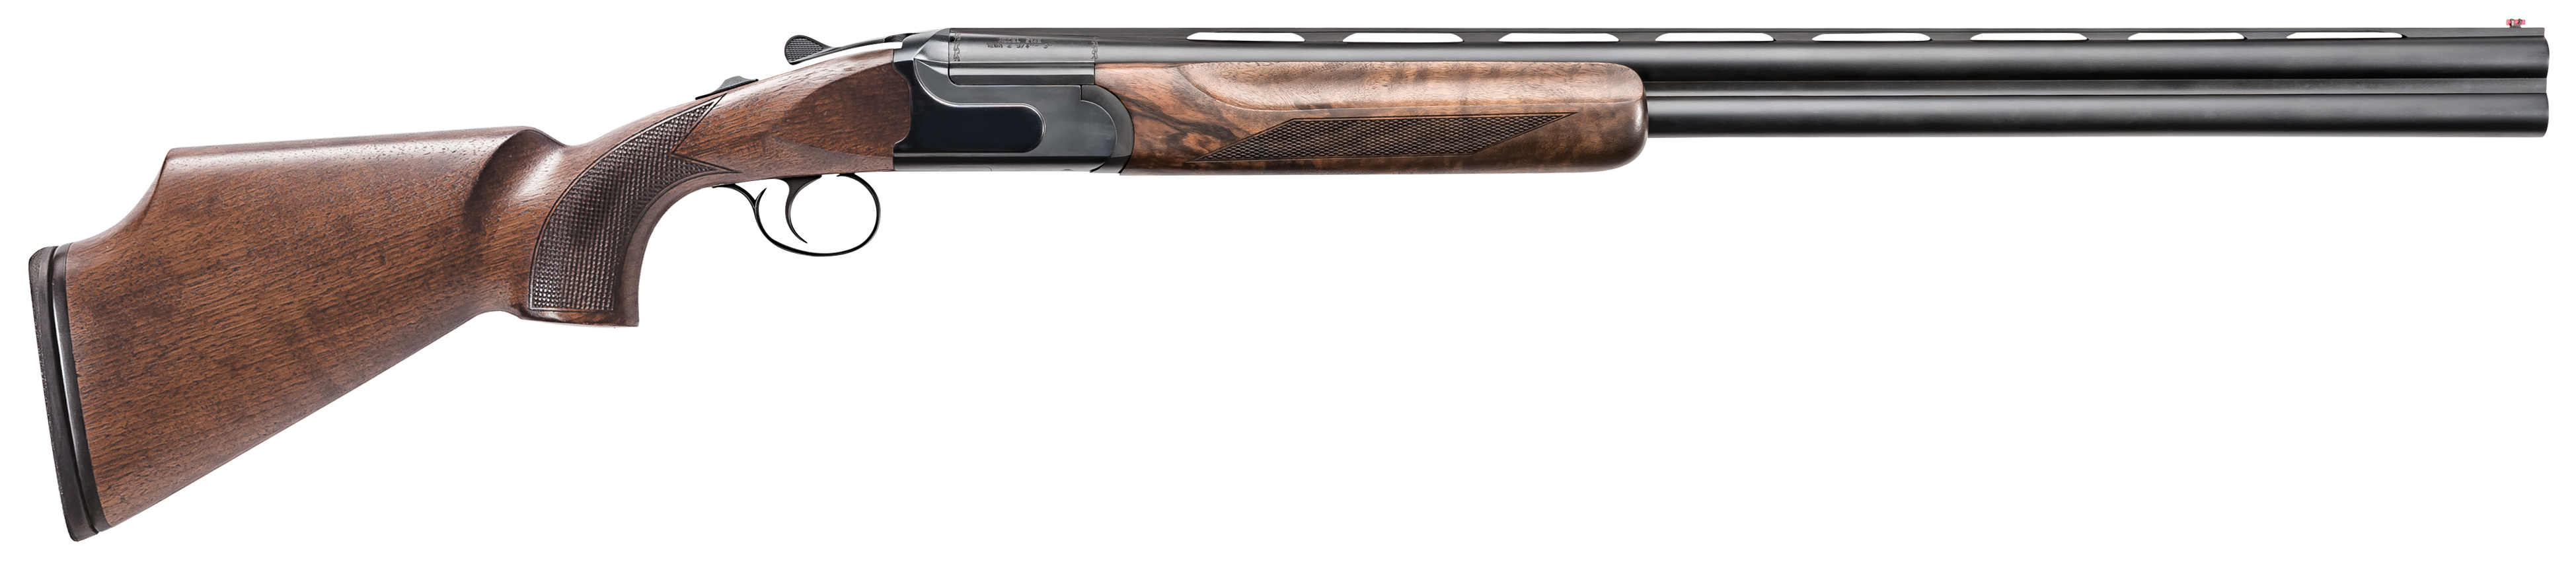 Charles Daly Chiappa 930127 214E Compact Over/Under 20 Gauge 26